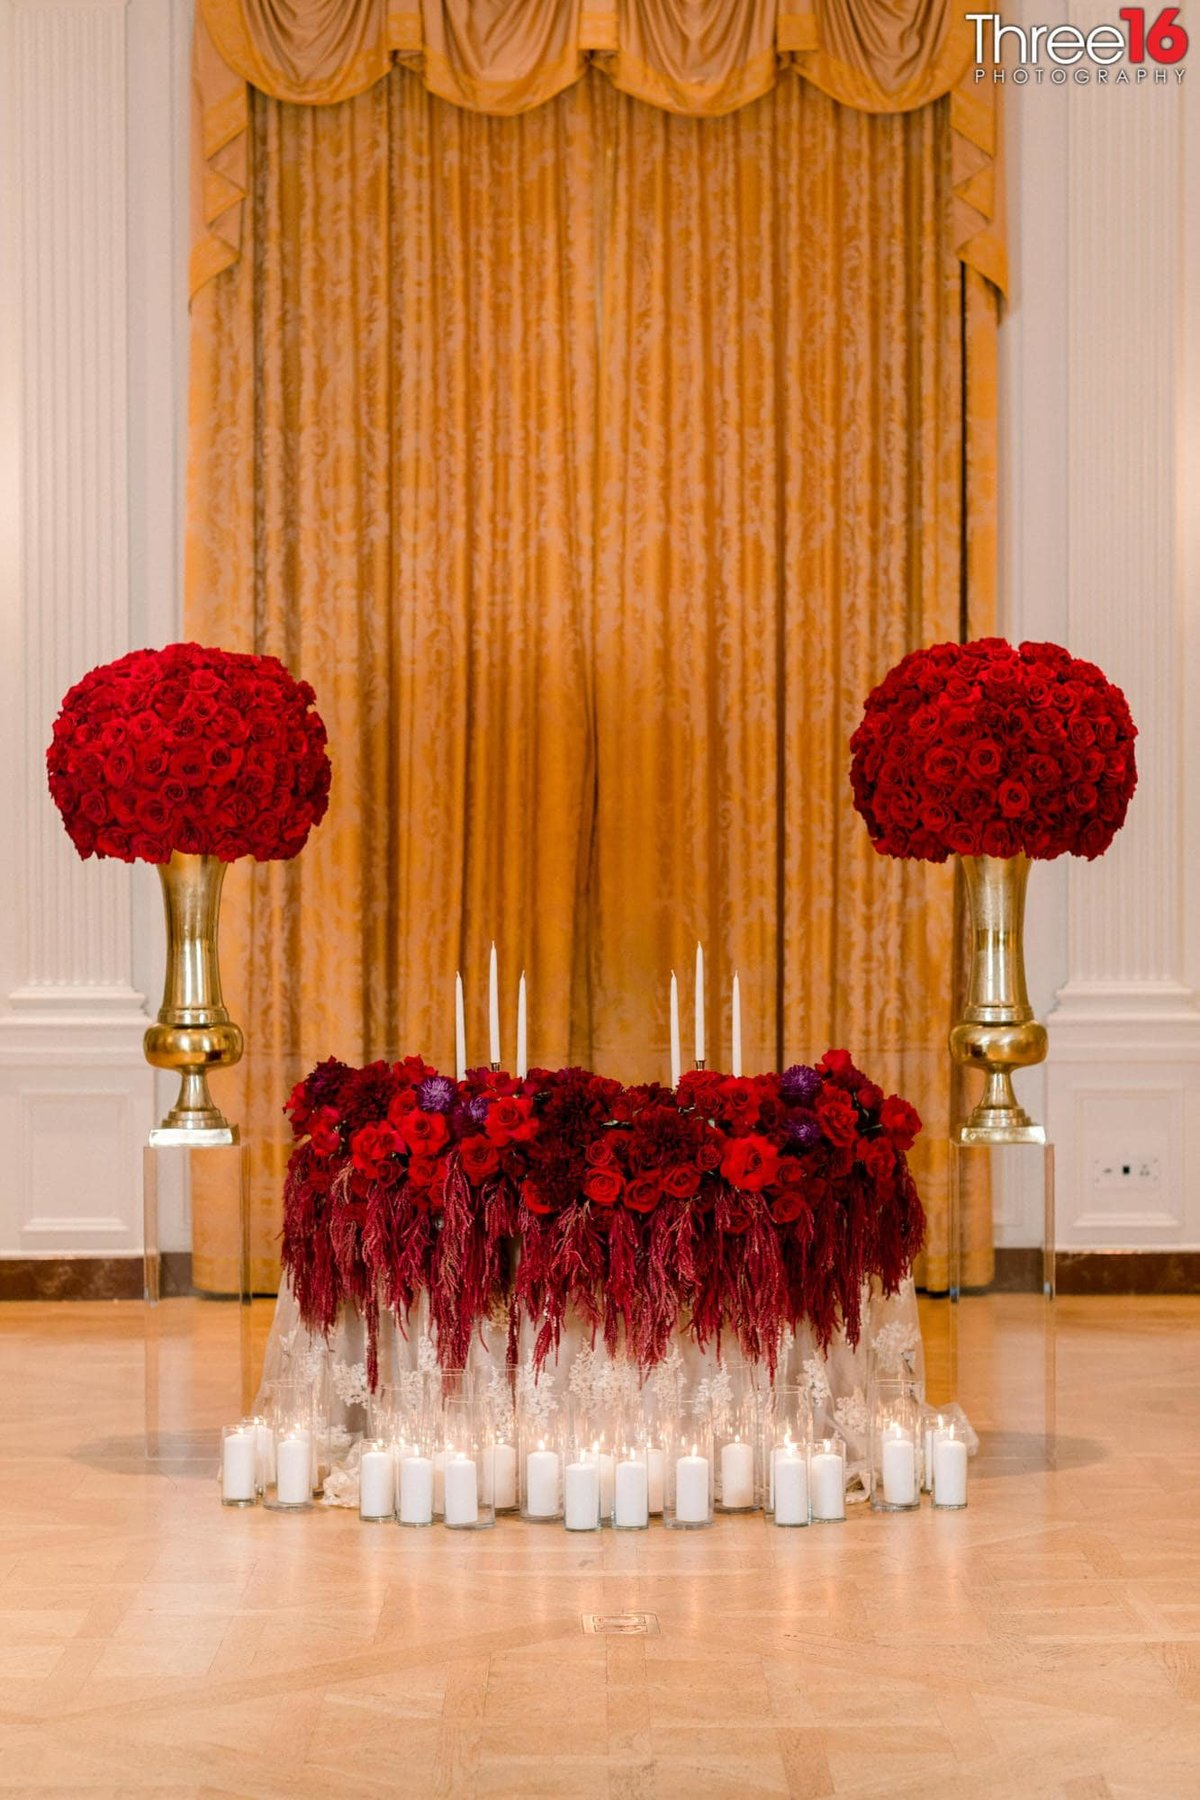 Amazing Sweetheart Table display for a wedding reception